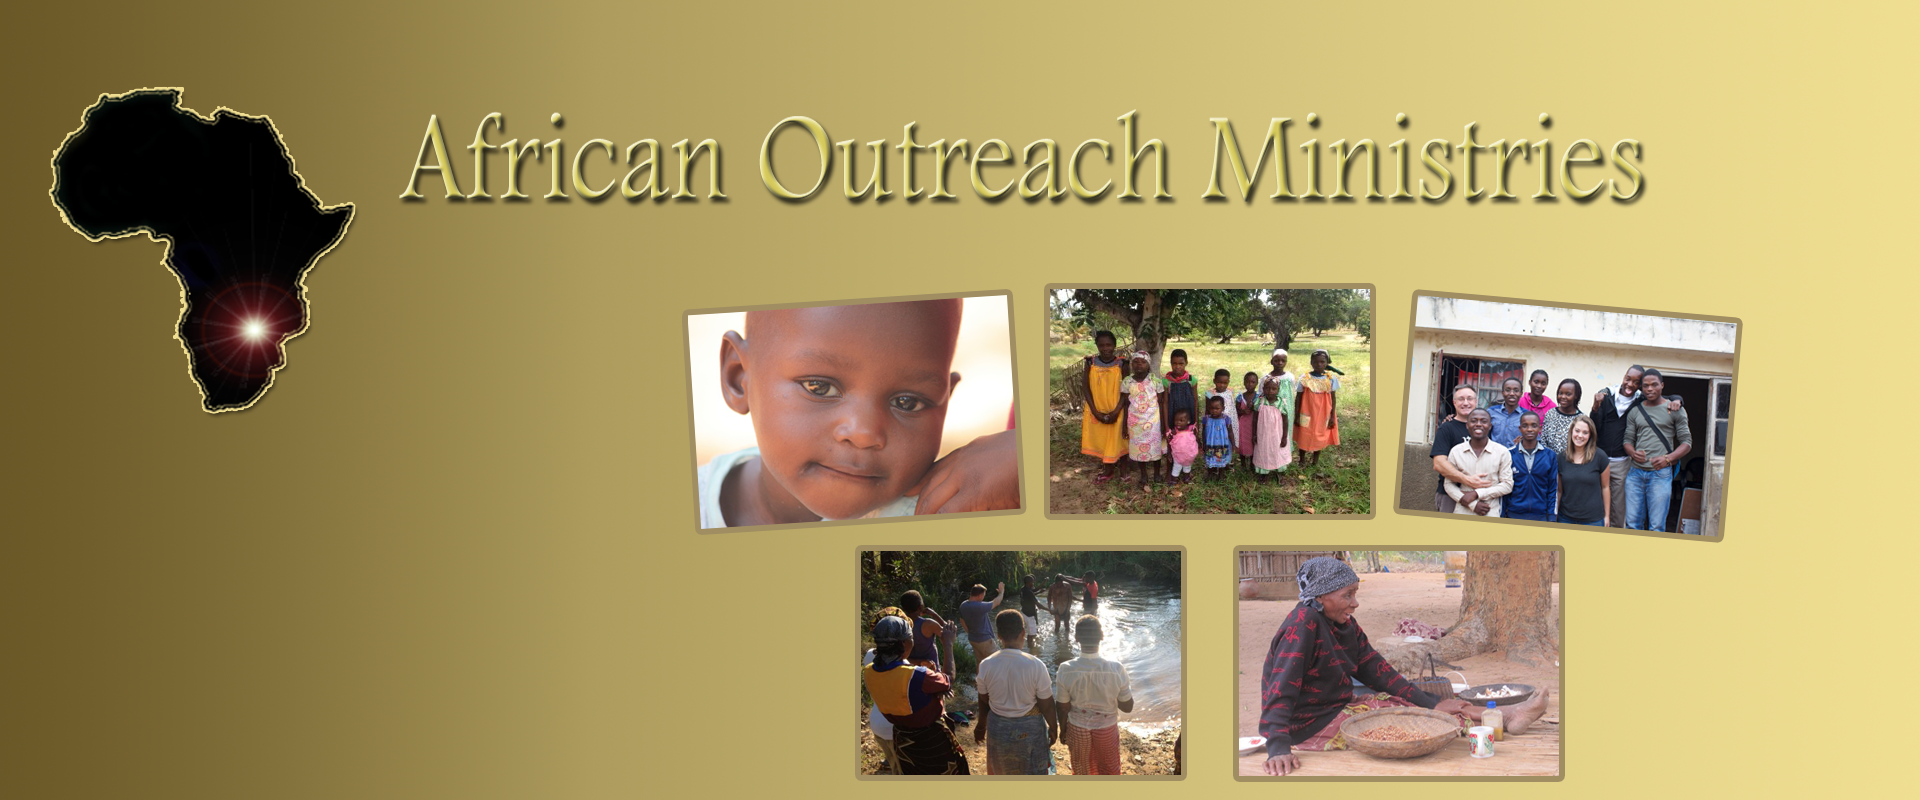 African Outreach Ministries